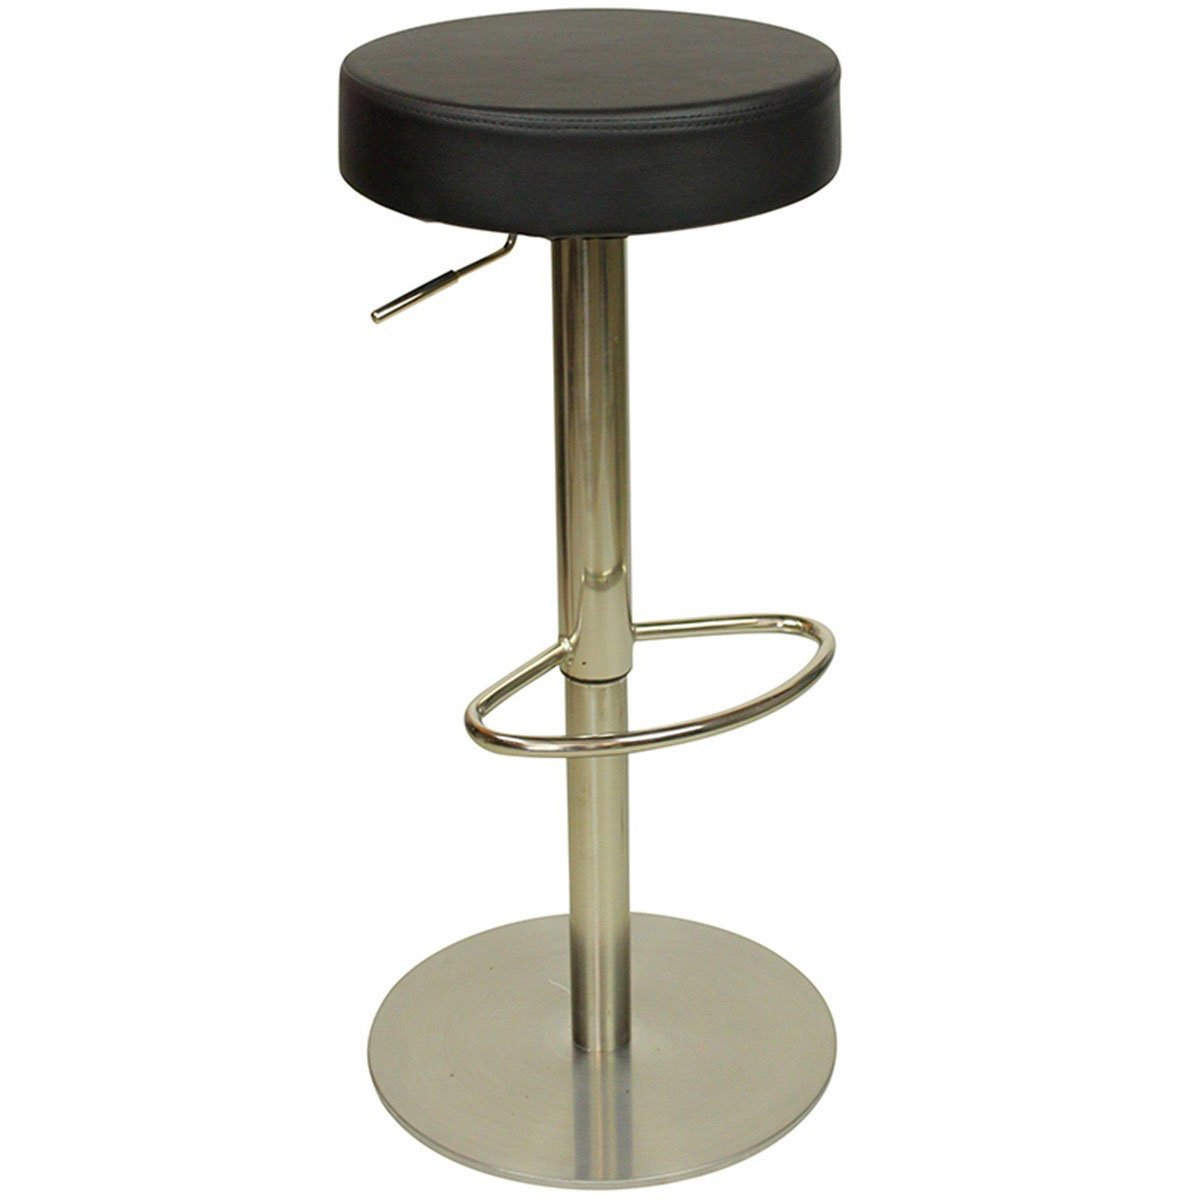 Deluxe Semplice Bar Stool - Black Product Image